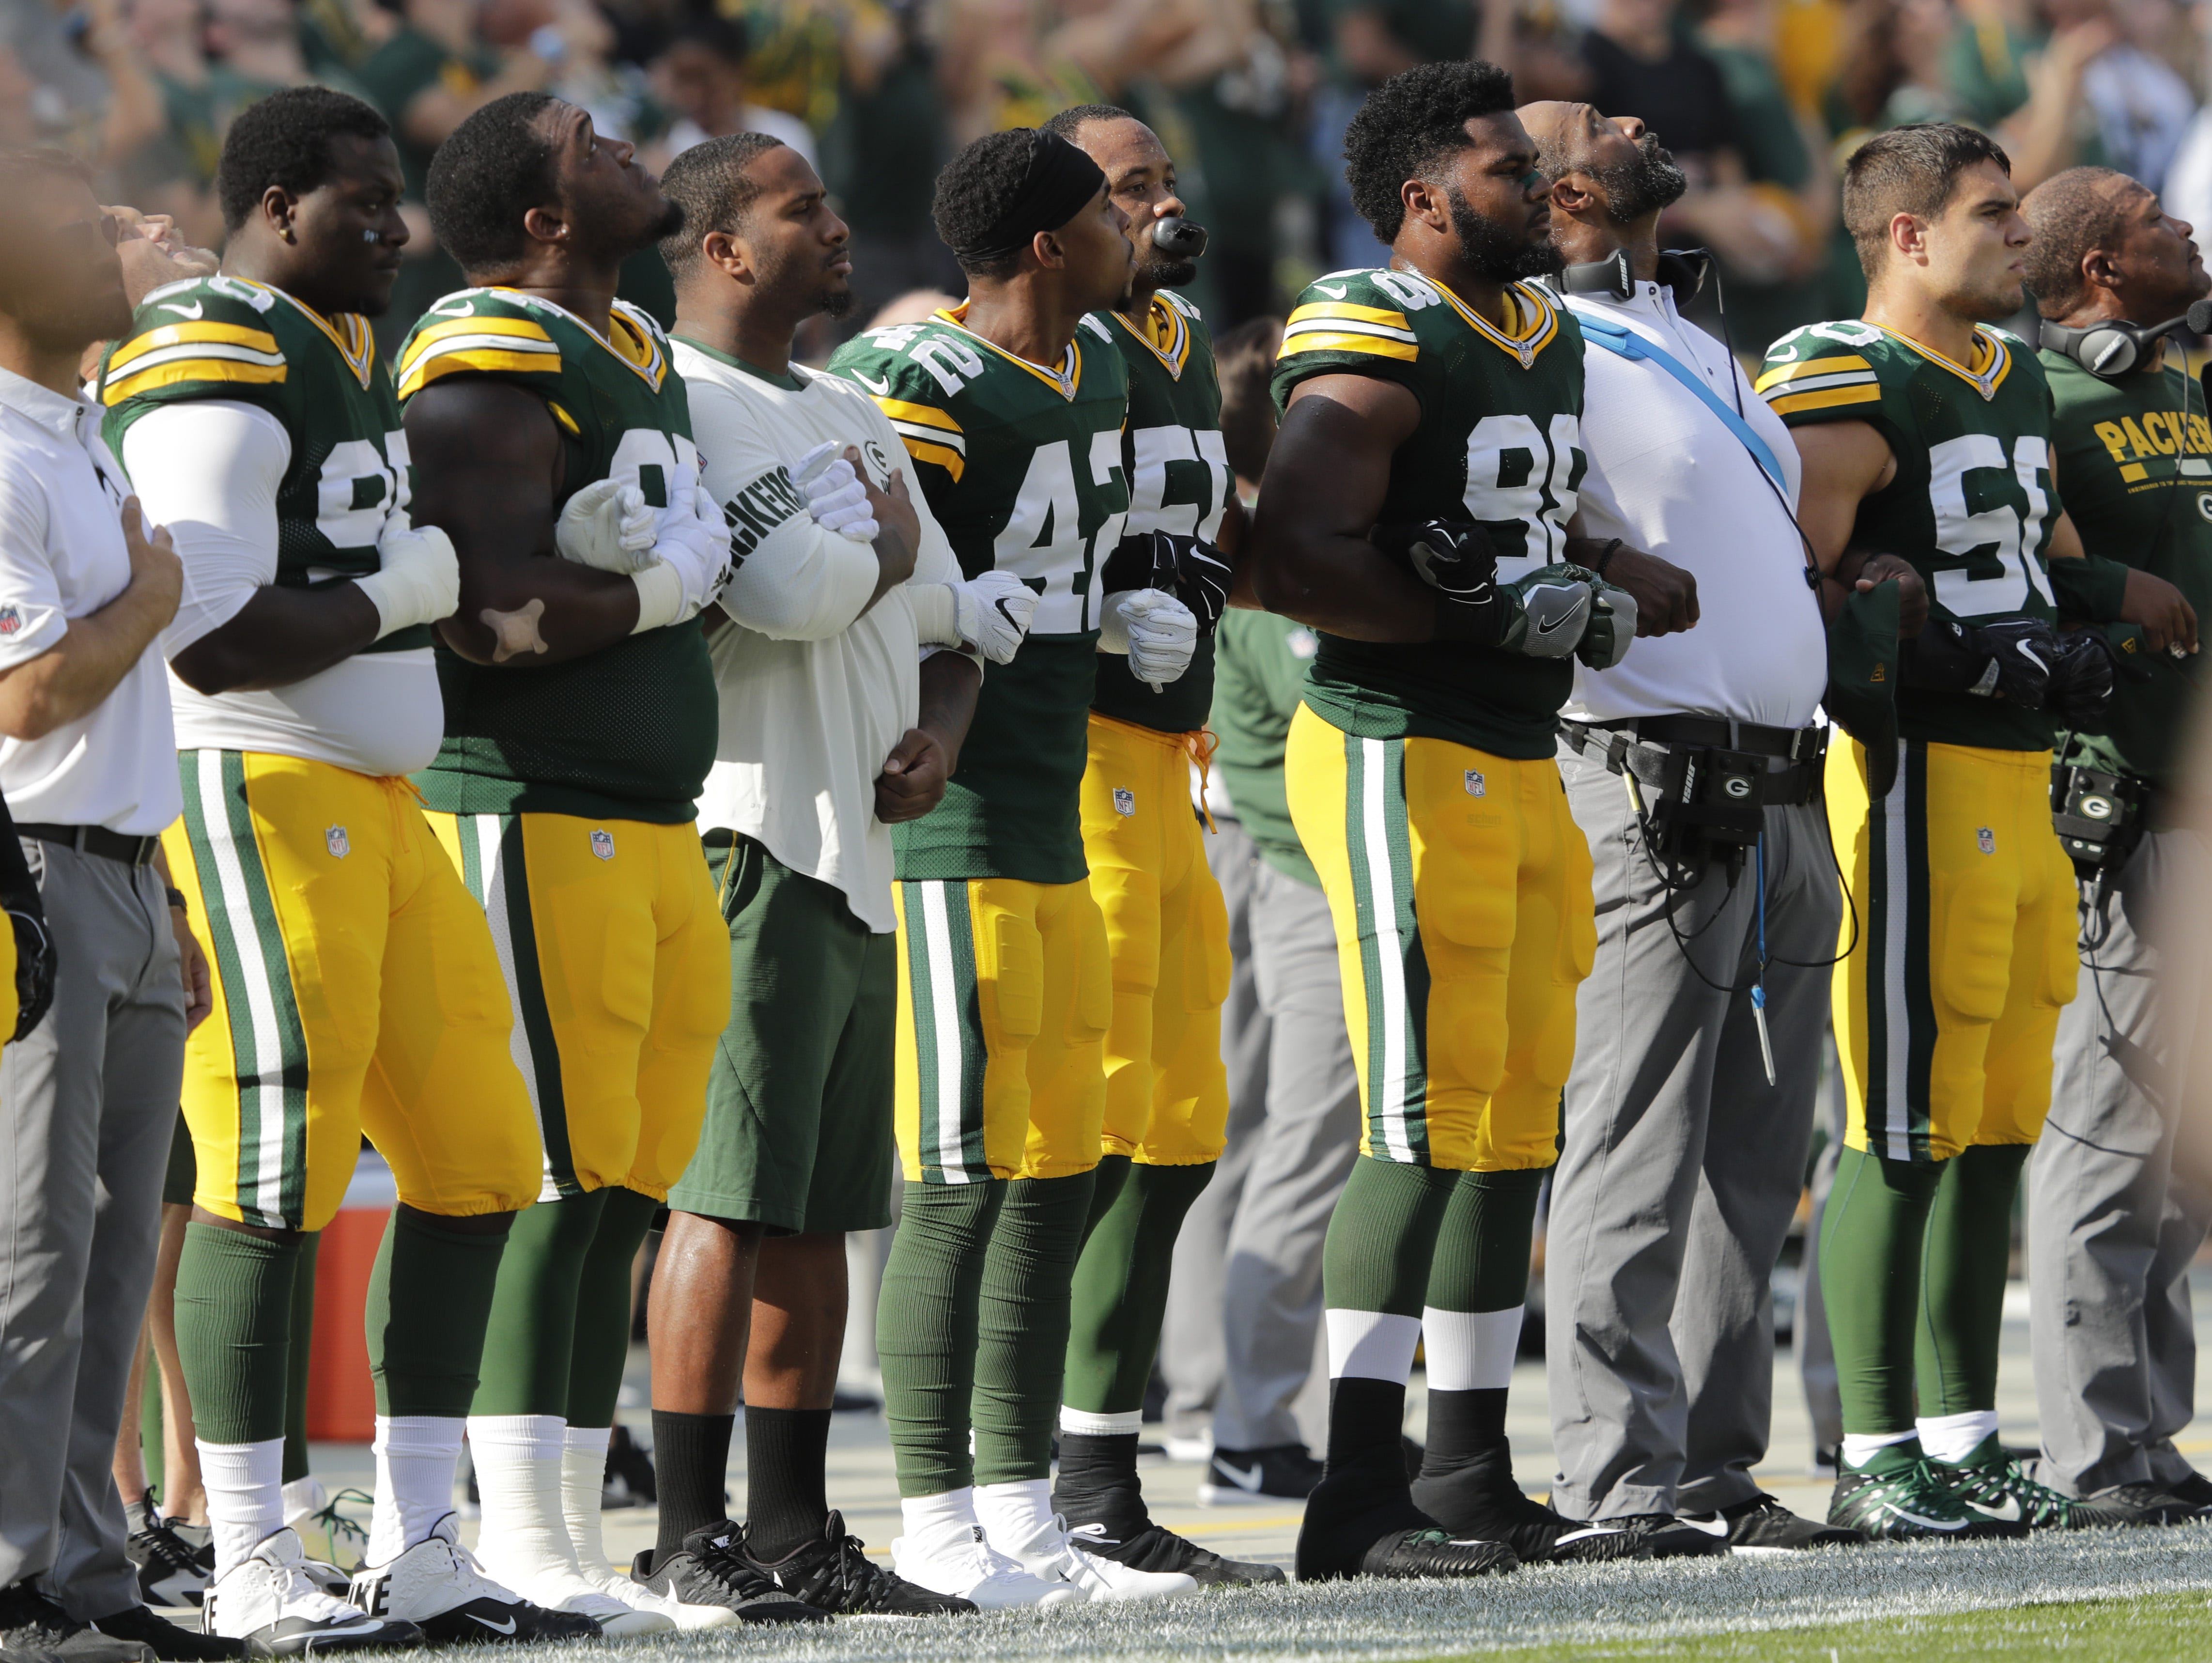 Packers shareholder invites President Trump to annual meeting to discuss NFL protests